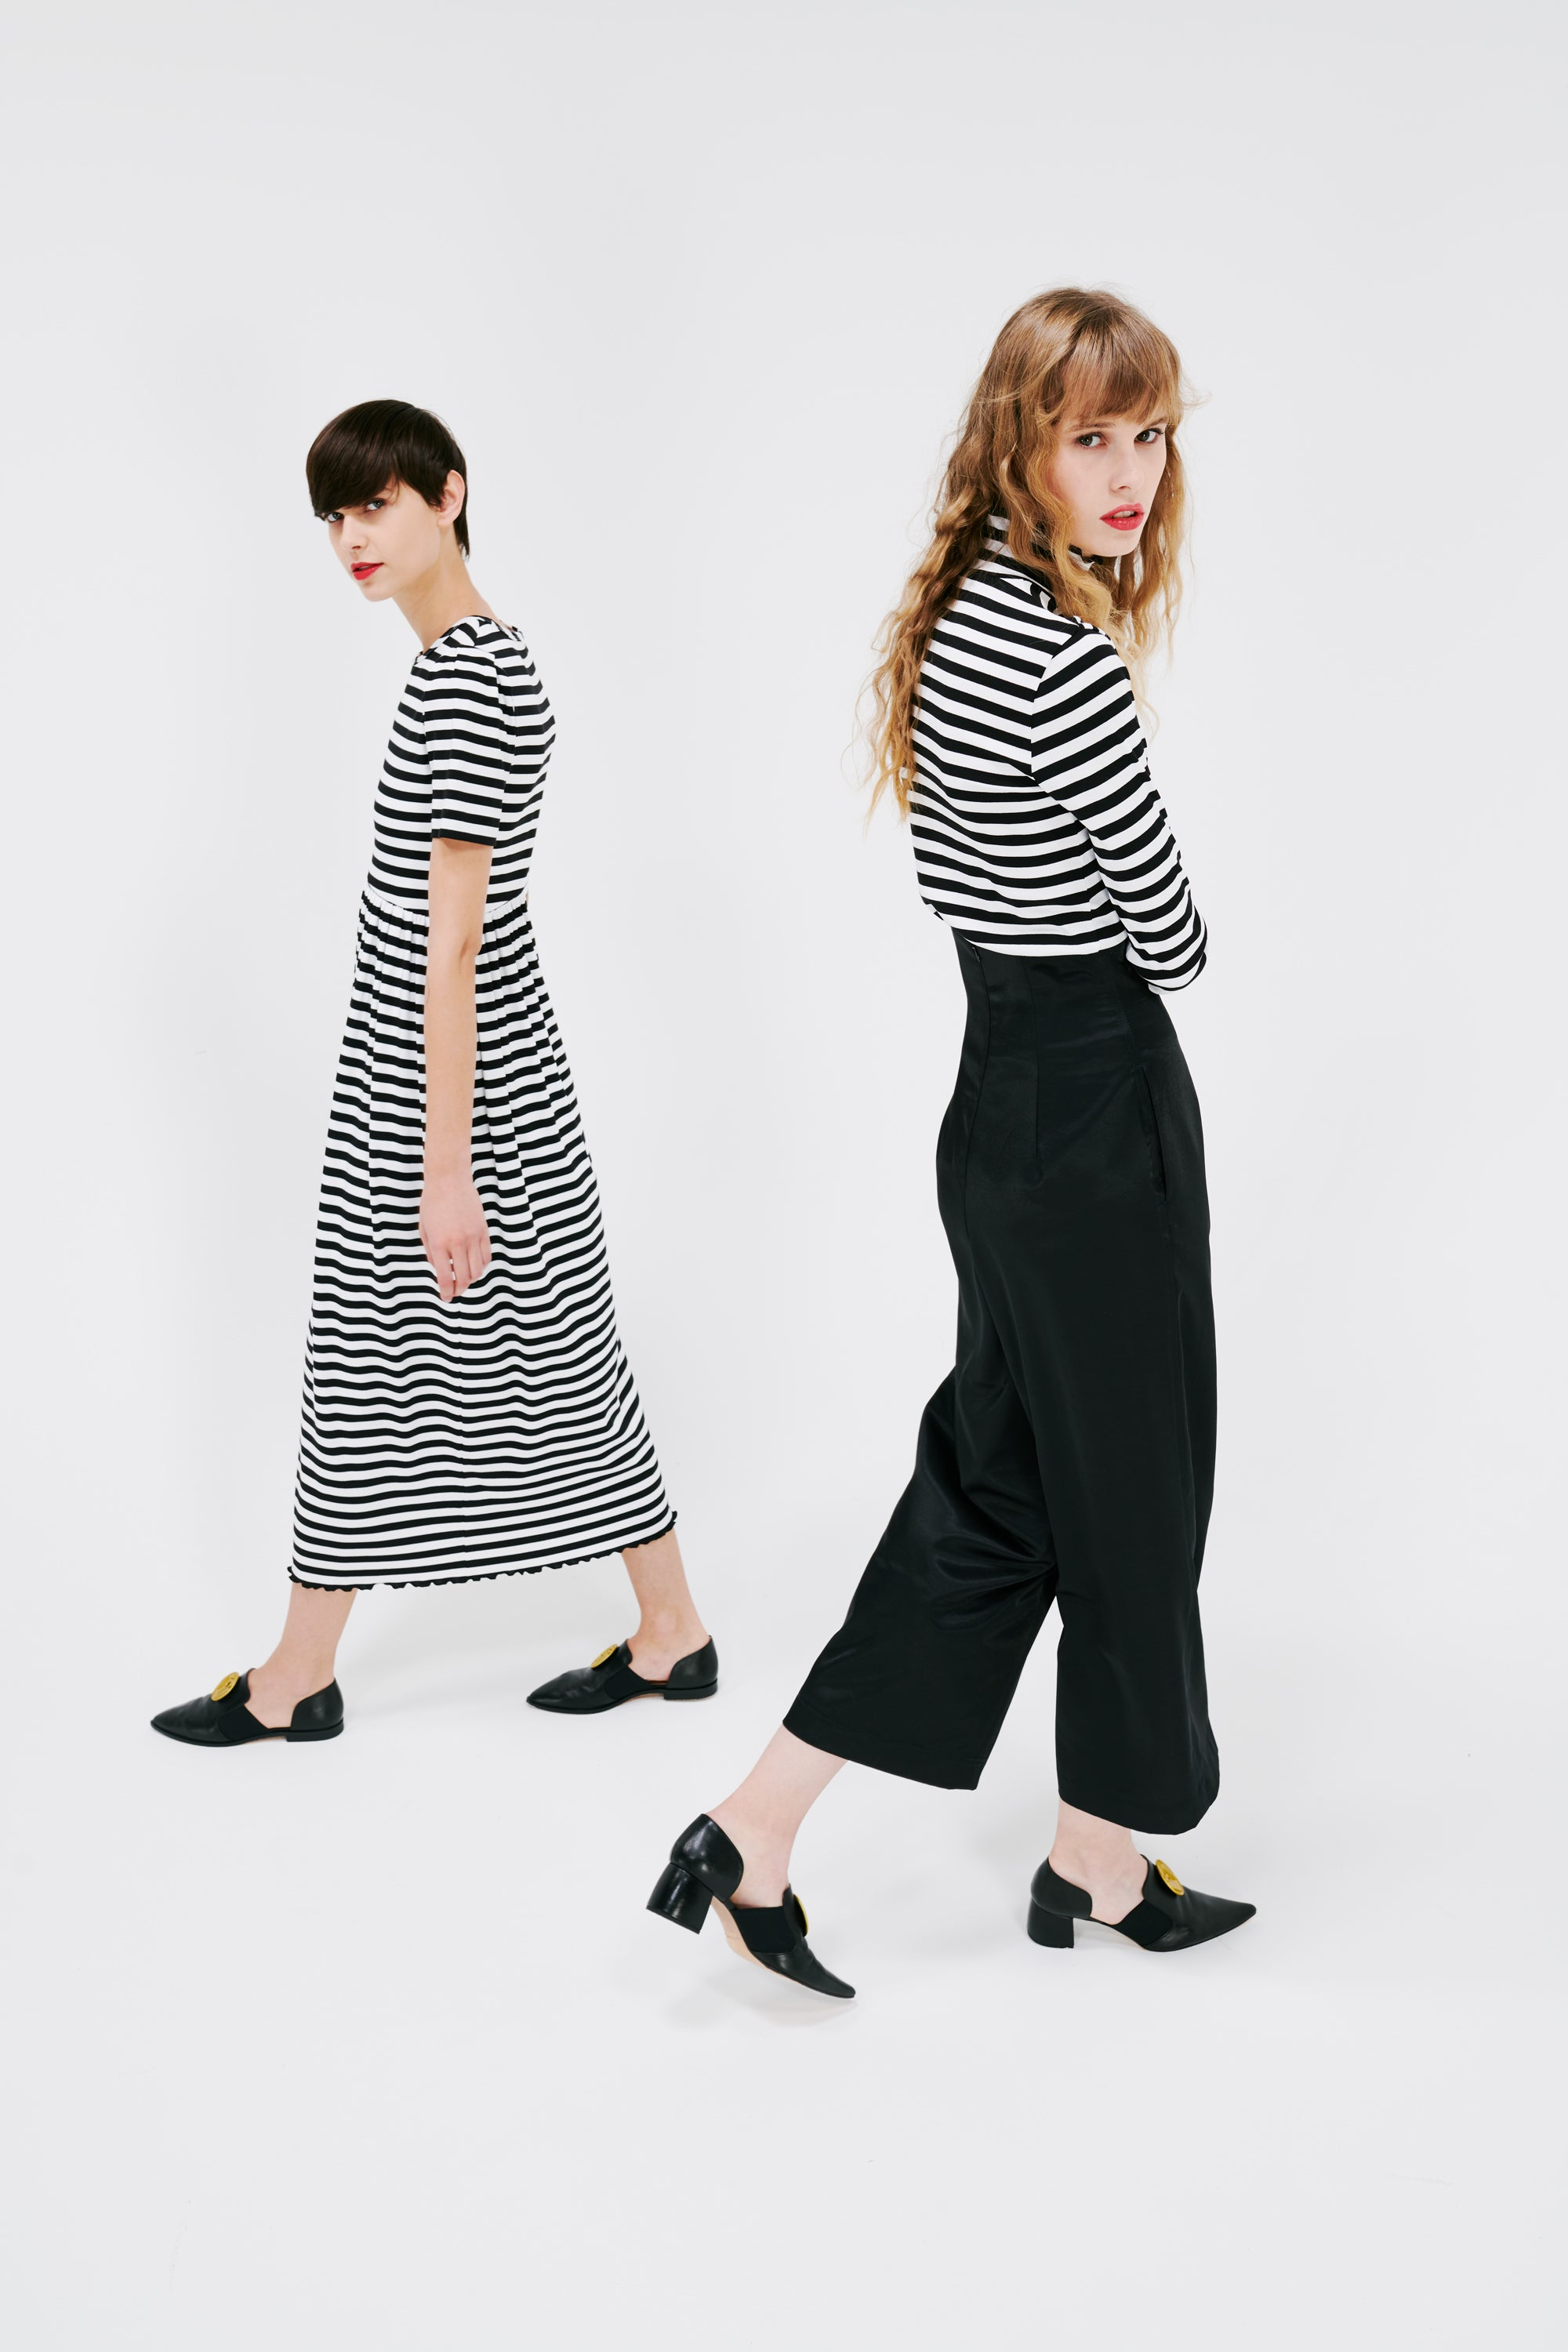 I'm Tough, Ambitious And I Know Exactly What I Want Keep Walking - Striped Mono Tone Tops & Black Pants, Striped Mono Tone Onepiece.